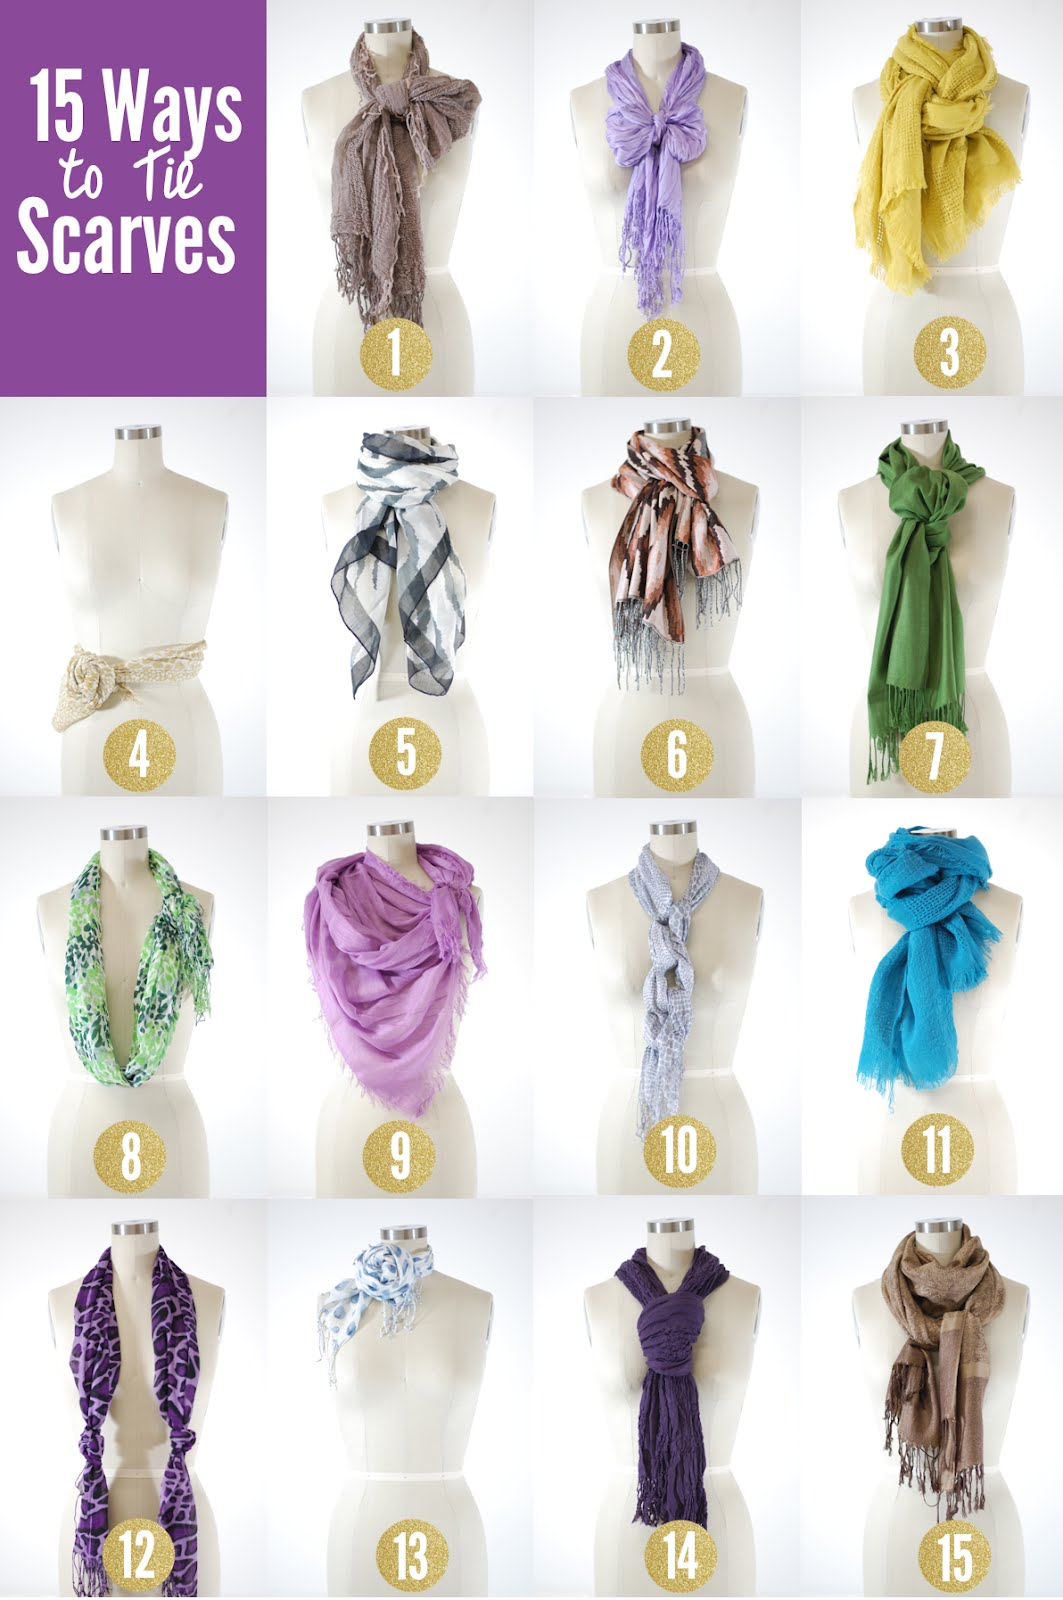 Stars for Streetlights 15 Ways to Tie Scarves Different Ways Tie Scarves Women